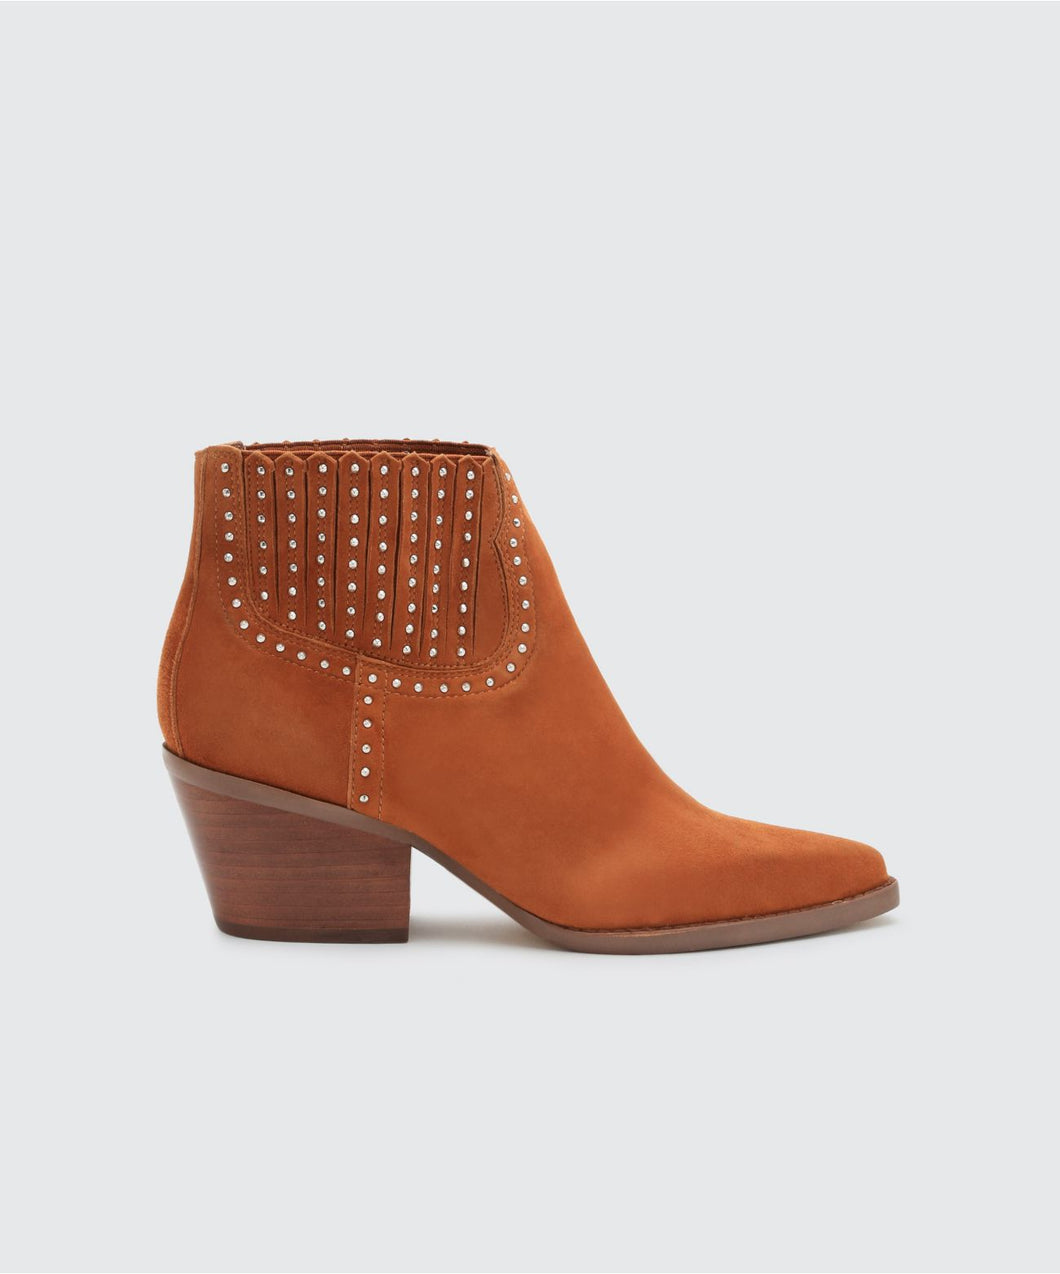 SETHE BOOTIES BROWN -   Dolce Vita